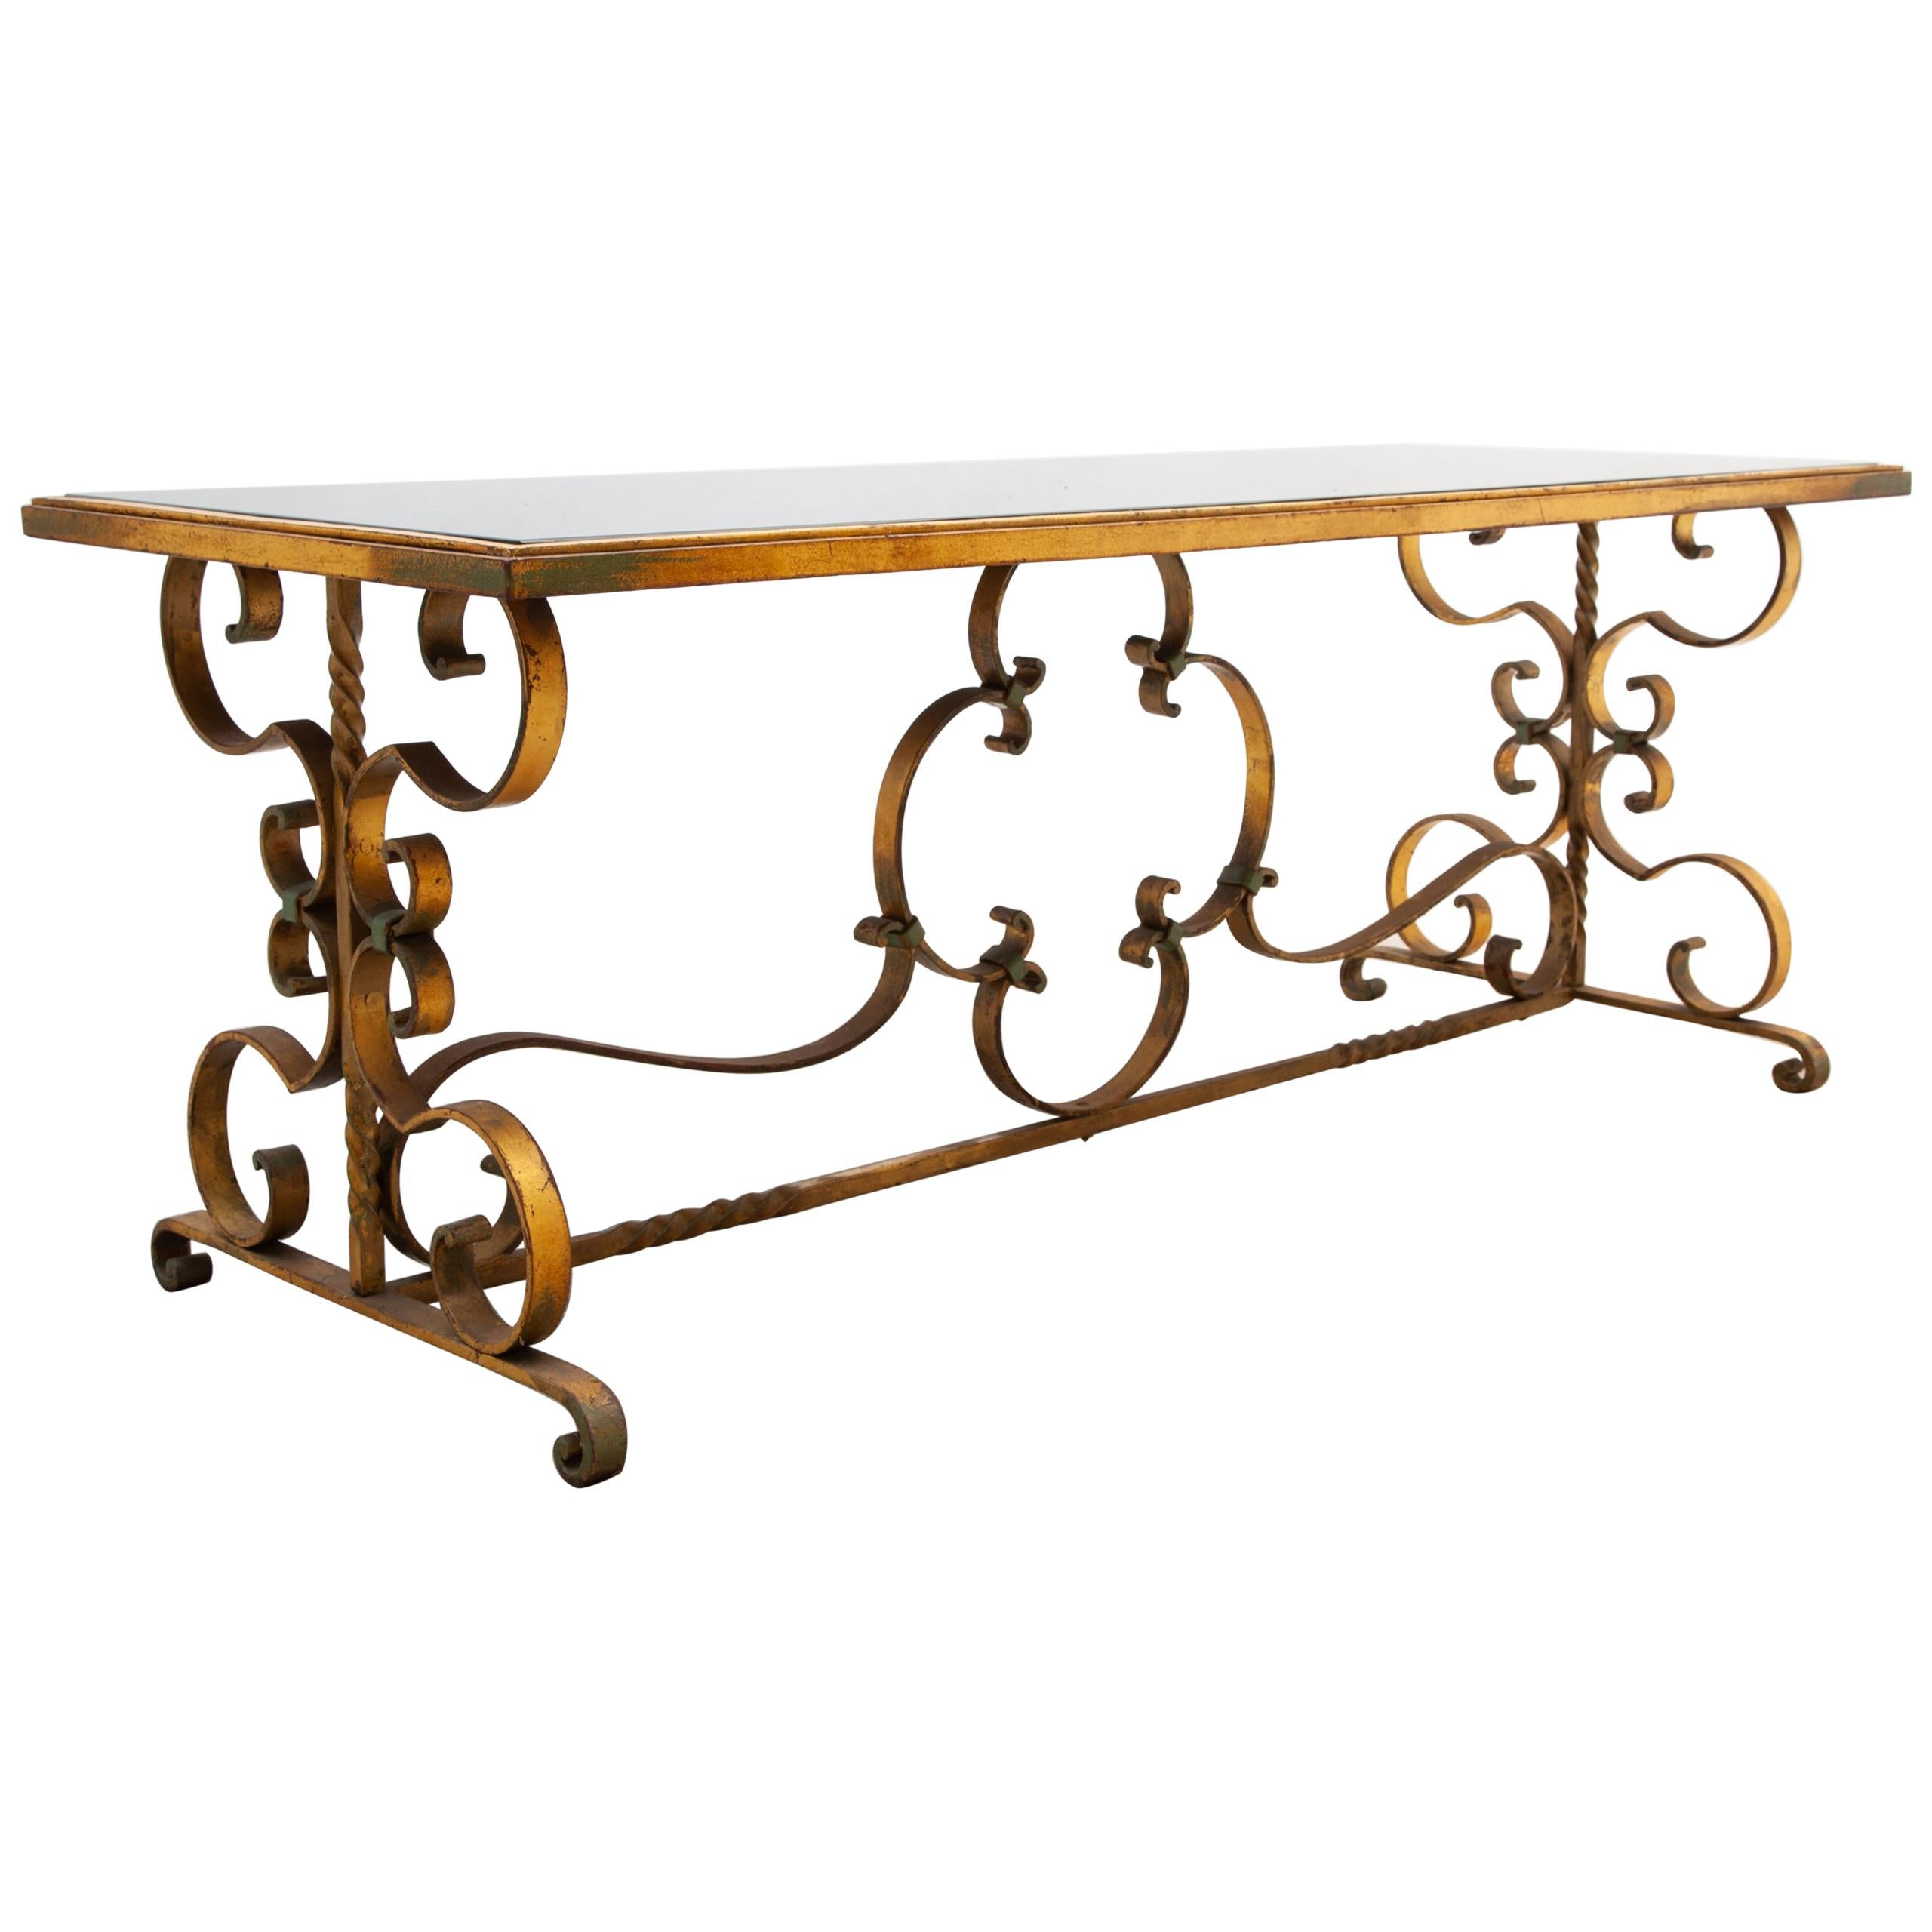 1930s Wrought Iron Art Deco Coffee Table, France